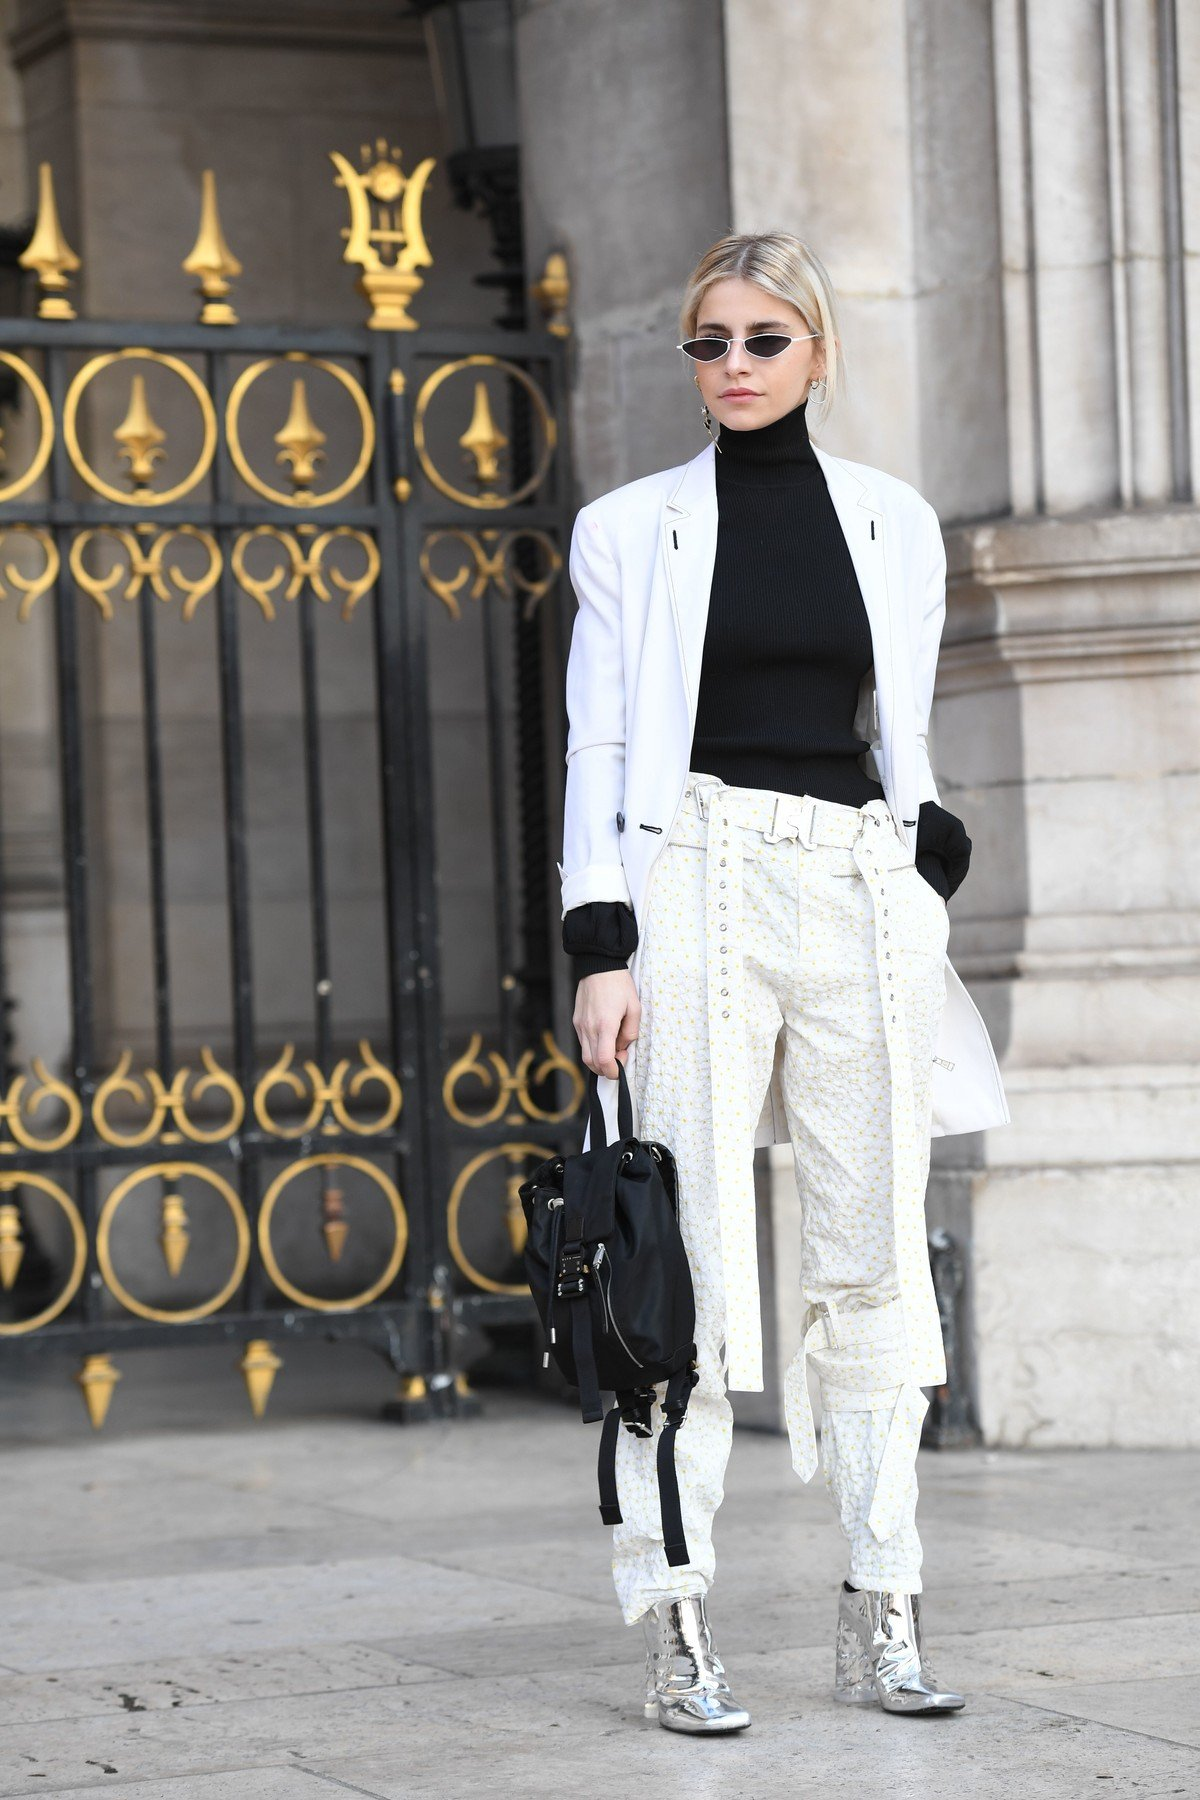 Street Style Street Style, Spring Summer 2019, Haute Couture Fashion Week, Paris,  France - 21 Jan 2019, Image: 409187037, License: Rights-managed, Restrictions: , Model Release: no, Credit line: Profimedia, TEMP Rex Features